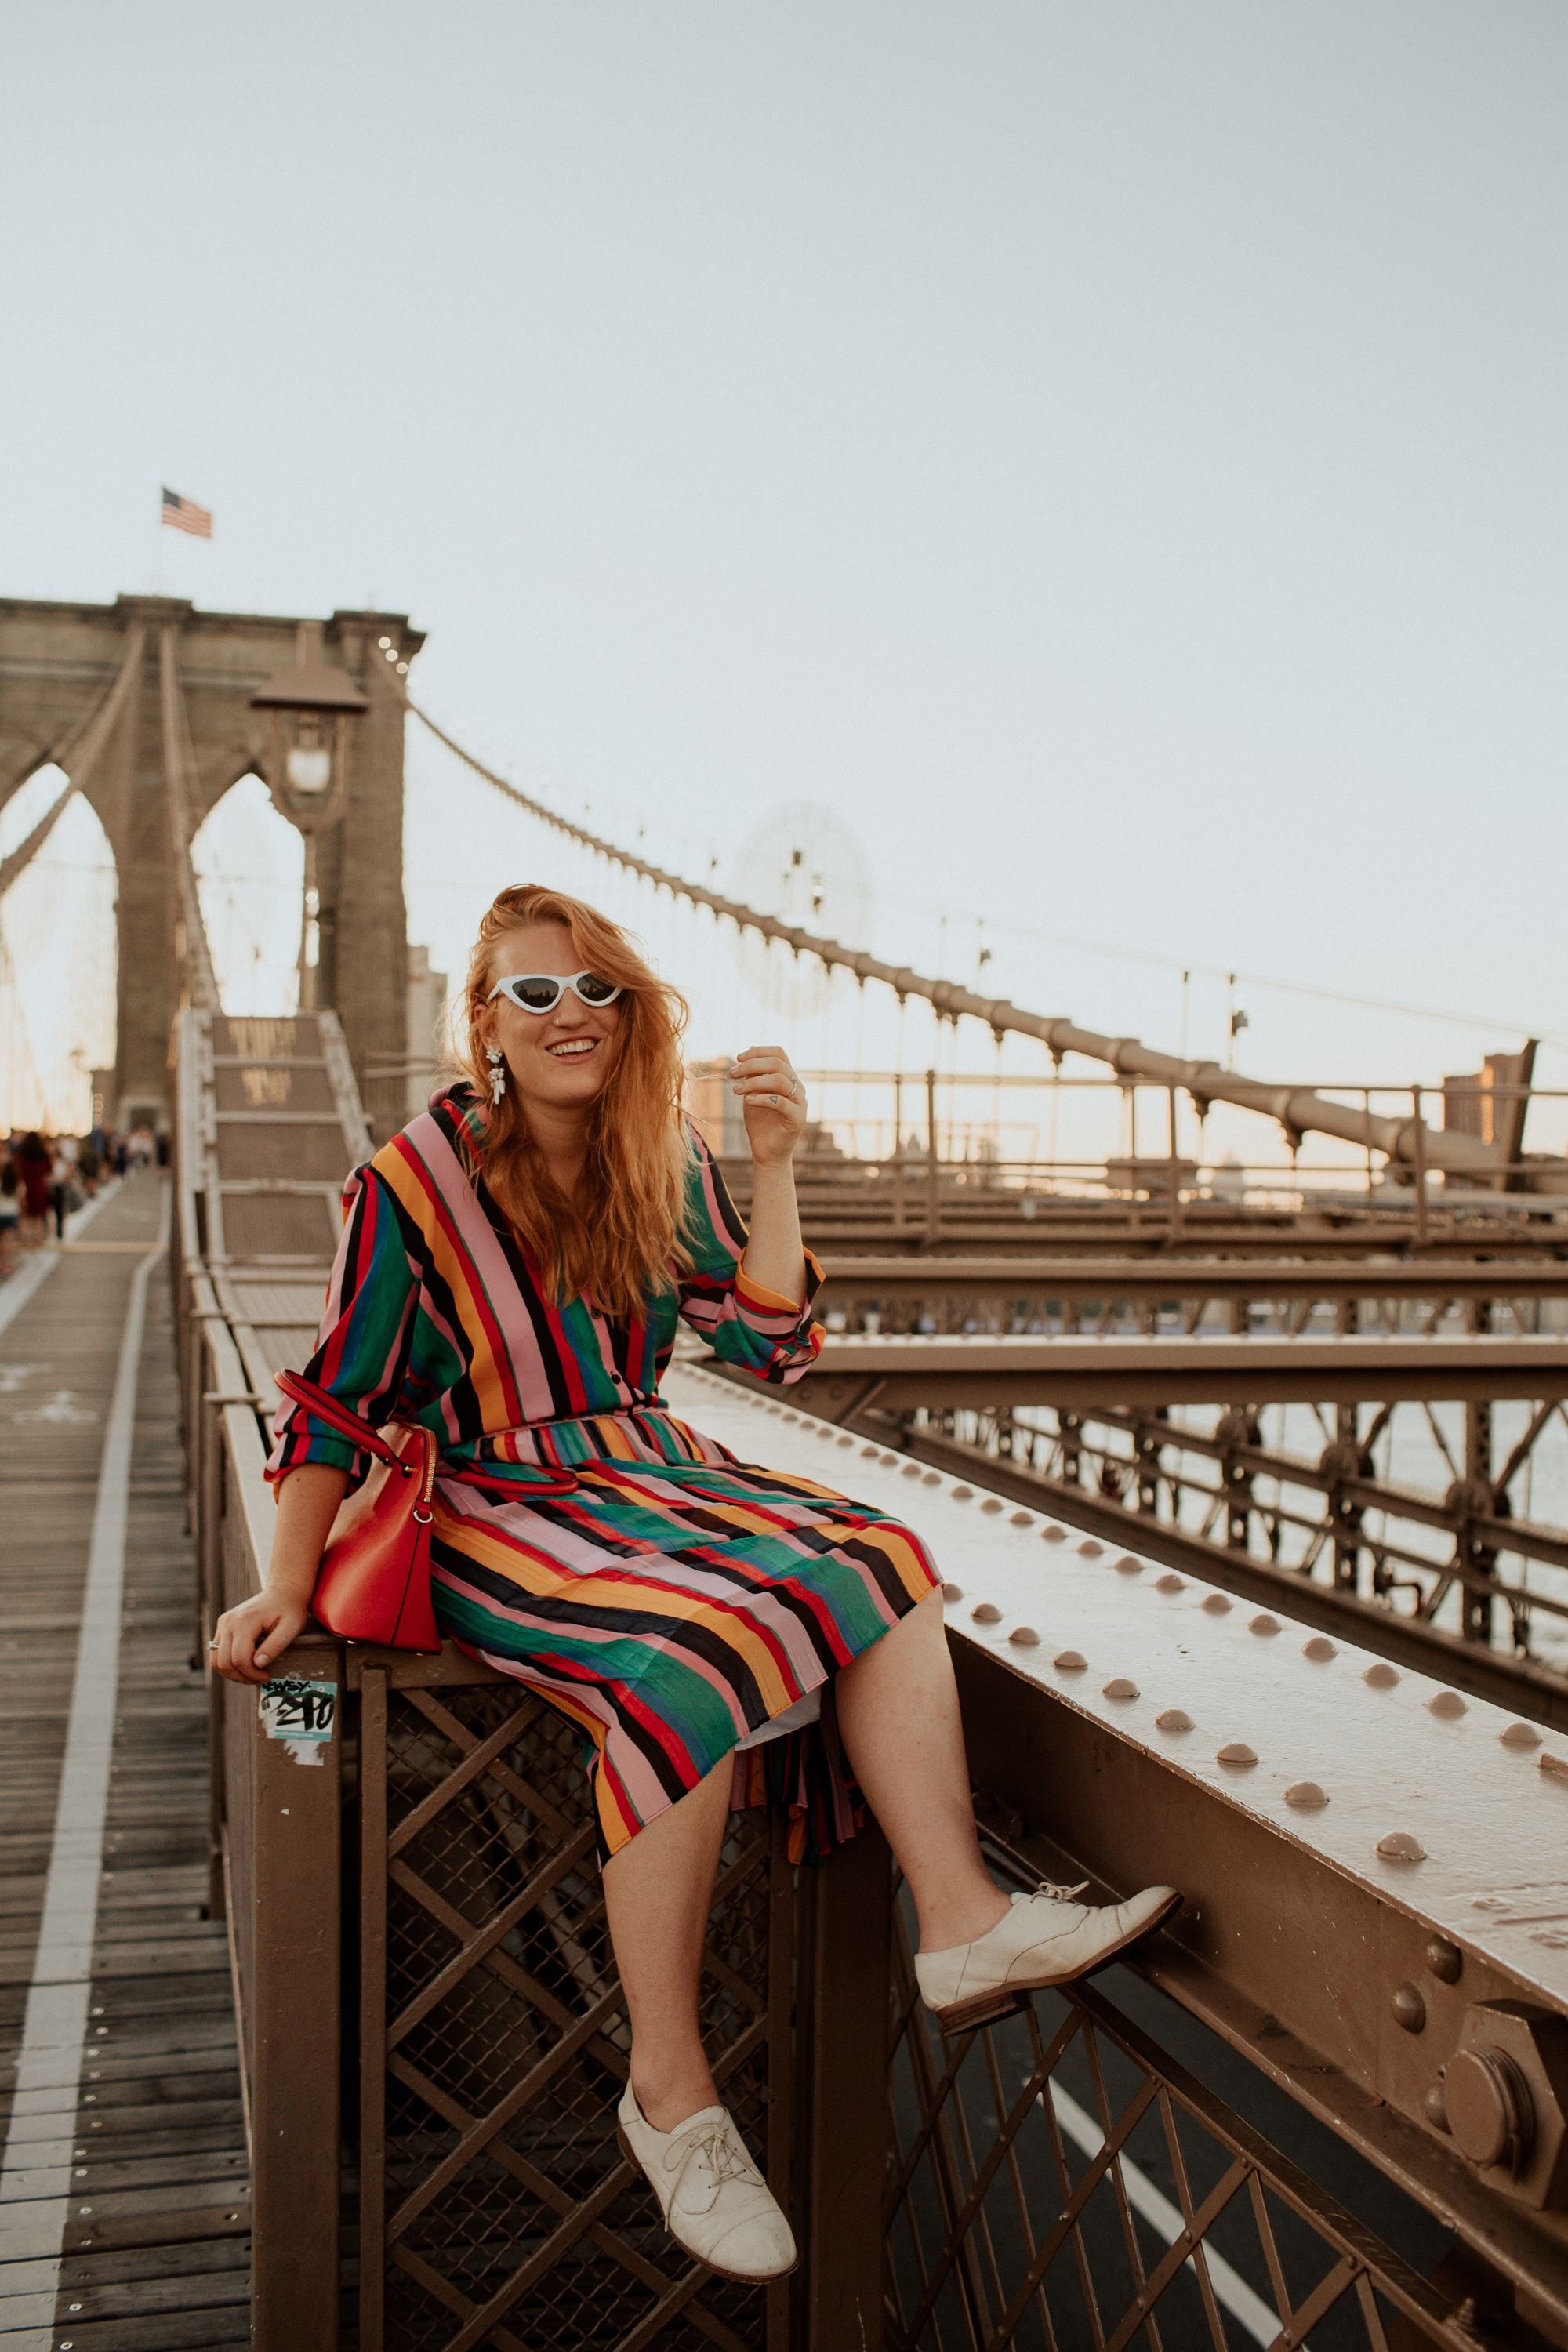 Woman in a rainbow Outfit sitting on the Brooklyn Bridge.